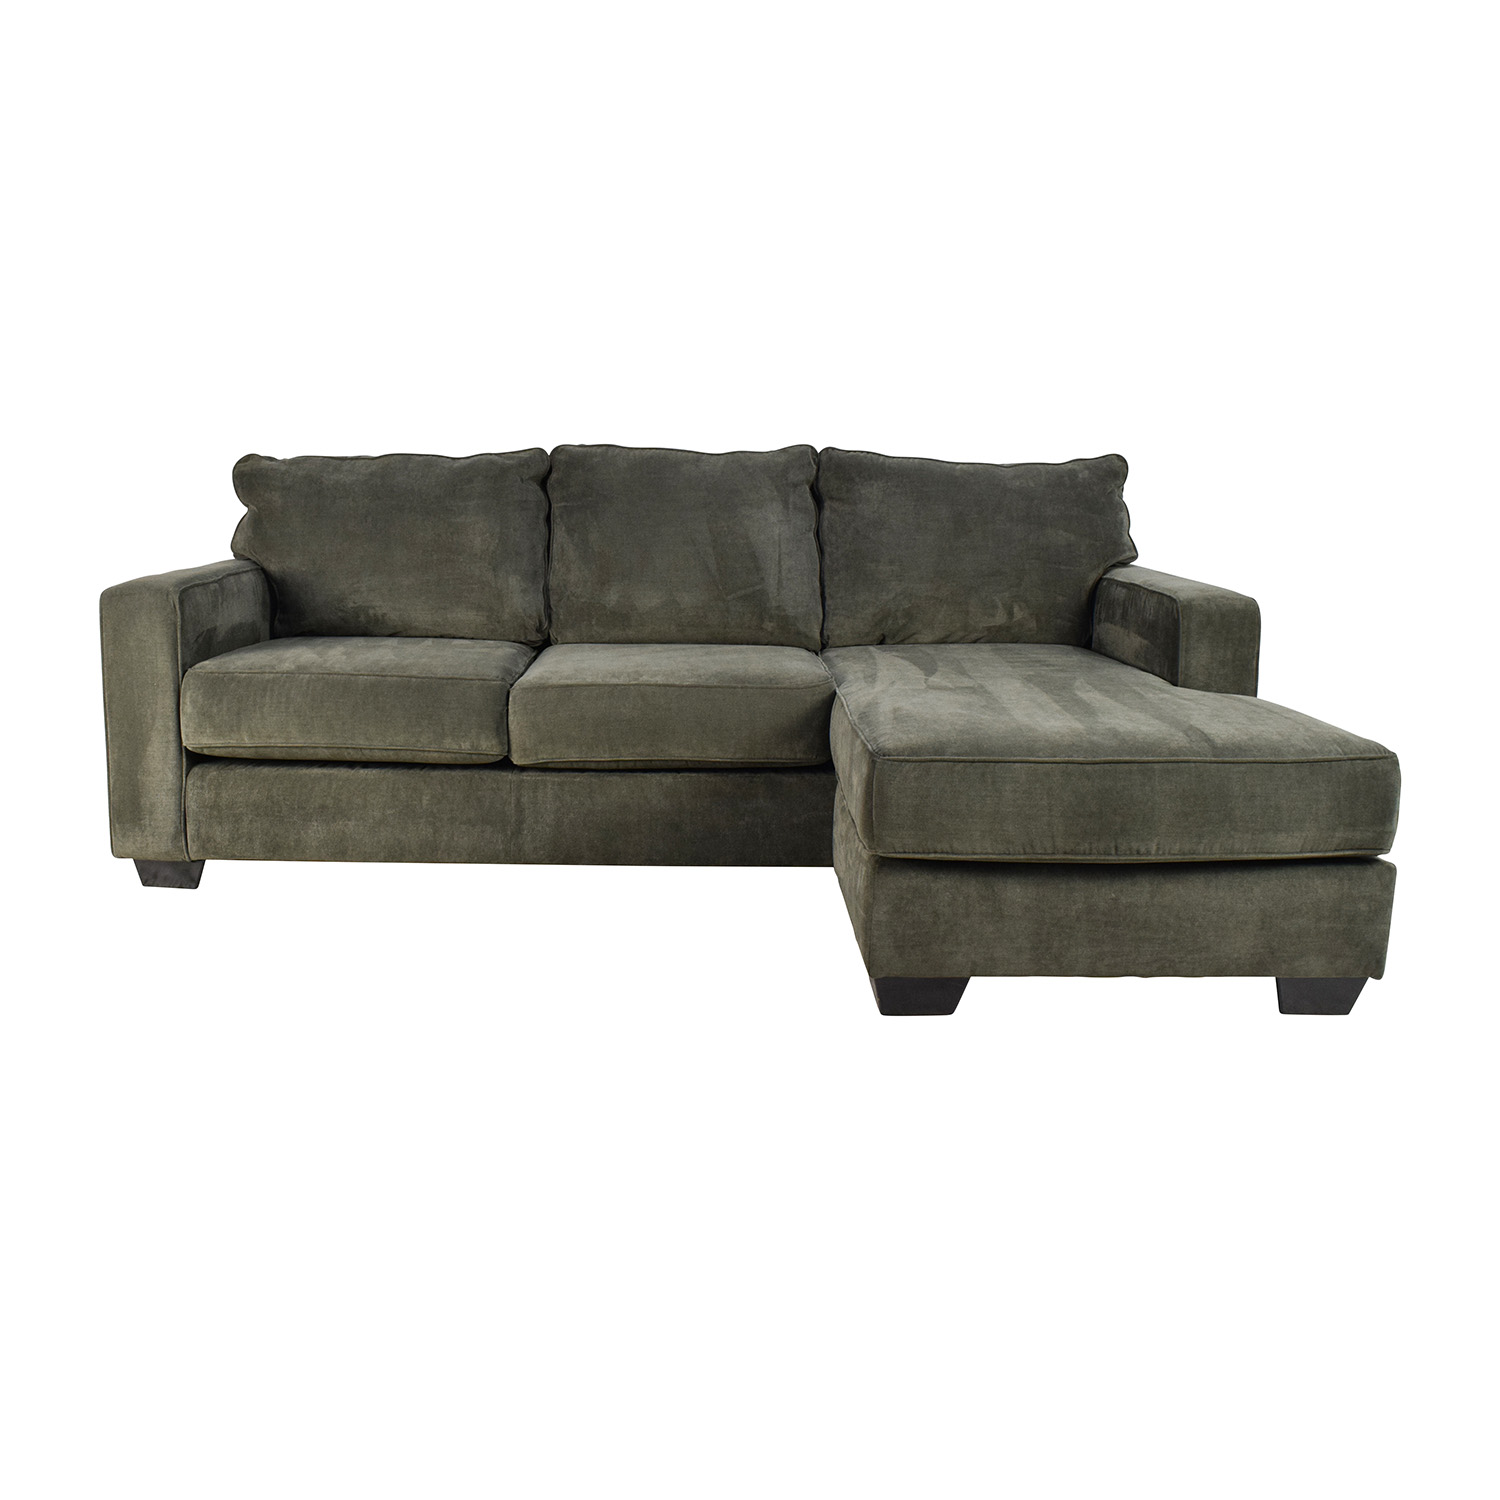 37% OFF - Jennifer Furniture Jennifer Convertibles Sectional Sofa / Sofas